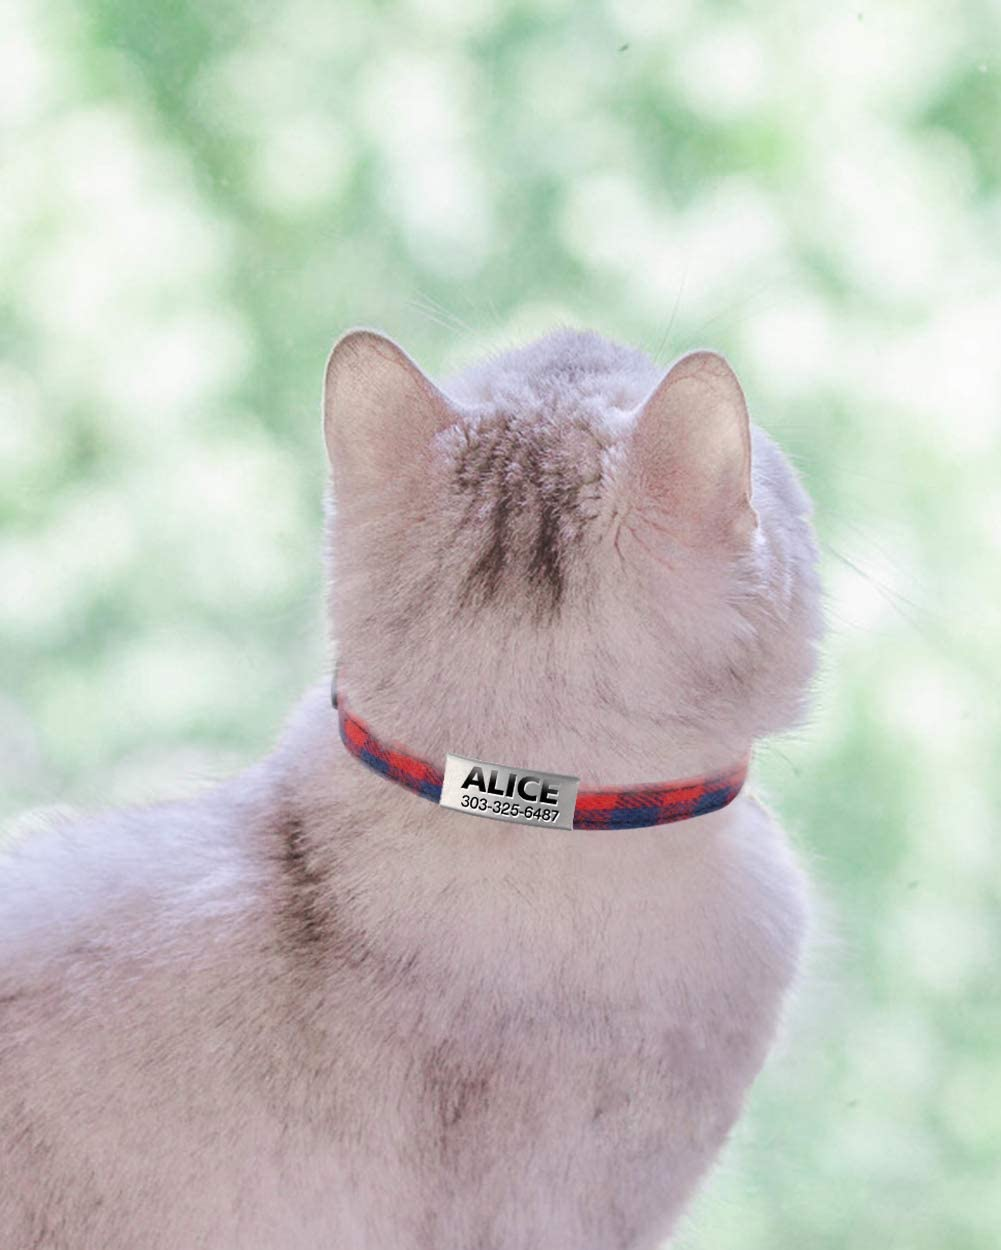 Cut Bowtie and Safety Release Breakaway ID Cat Collar with Name Tag Engraved,18-25cm Red Taglory Personalised Cat Collars with Bell